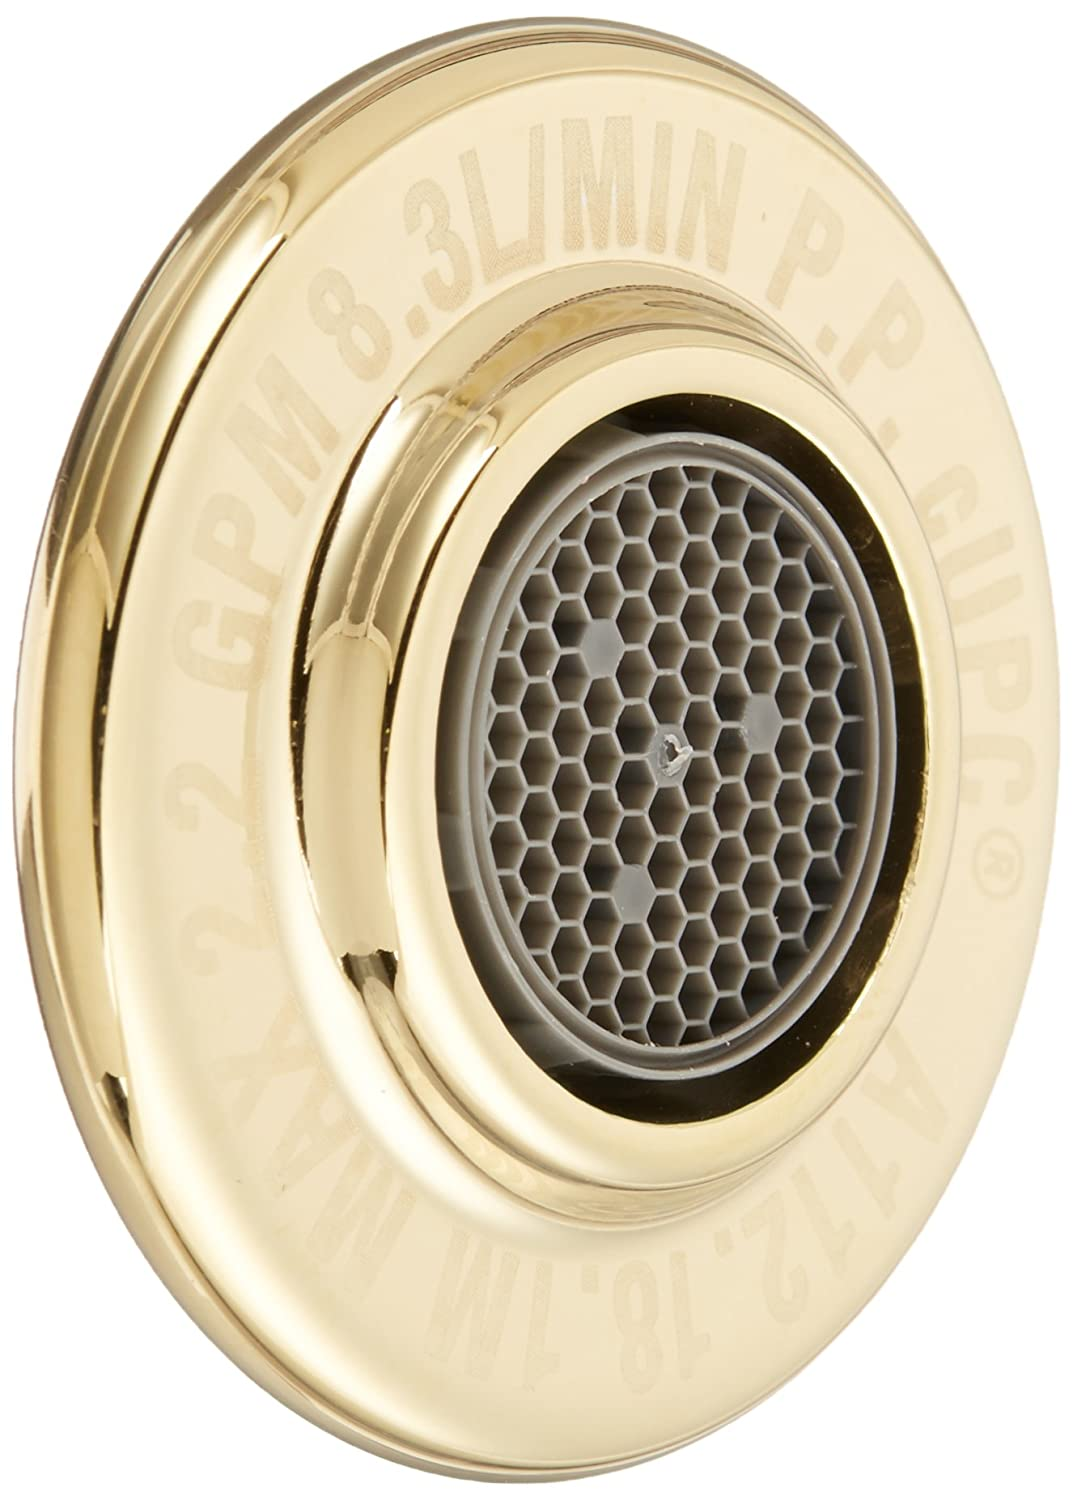 Pfister 941146V Male Aerator Assembly, Polished Brass